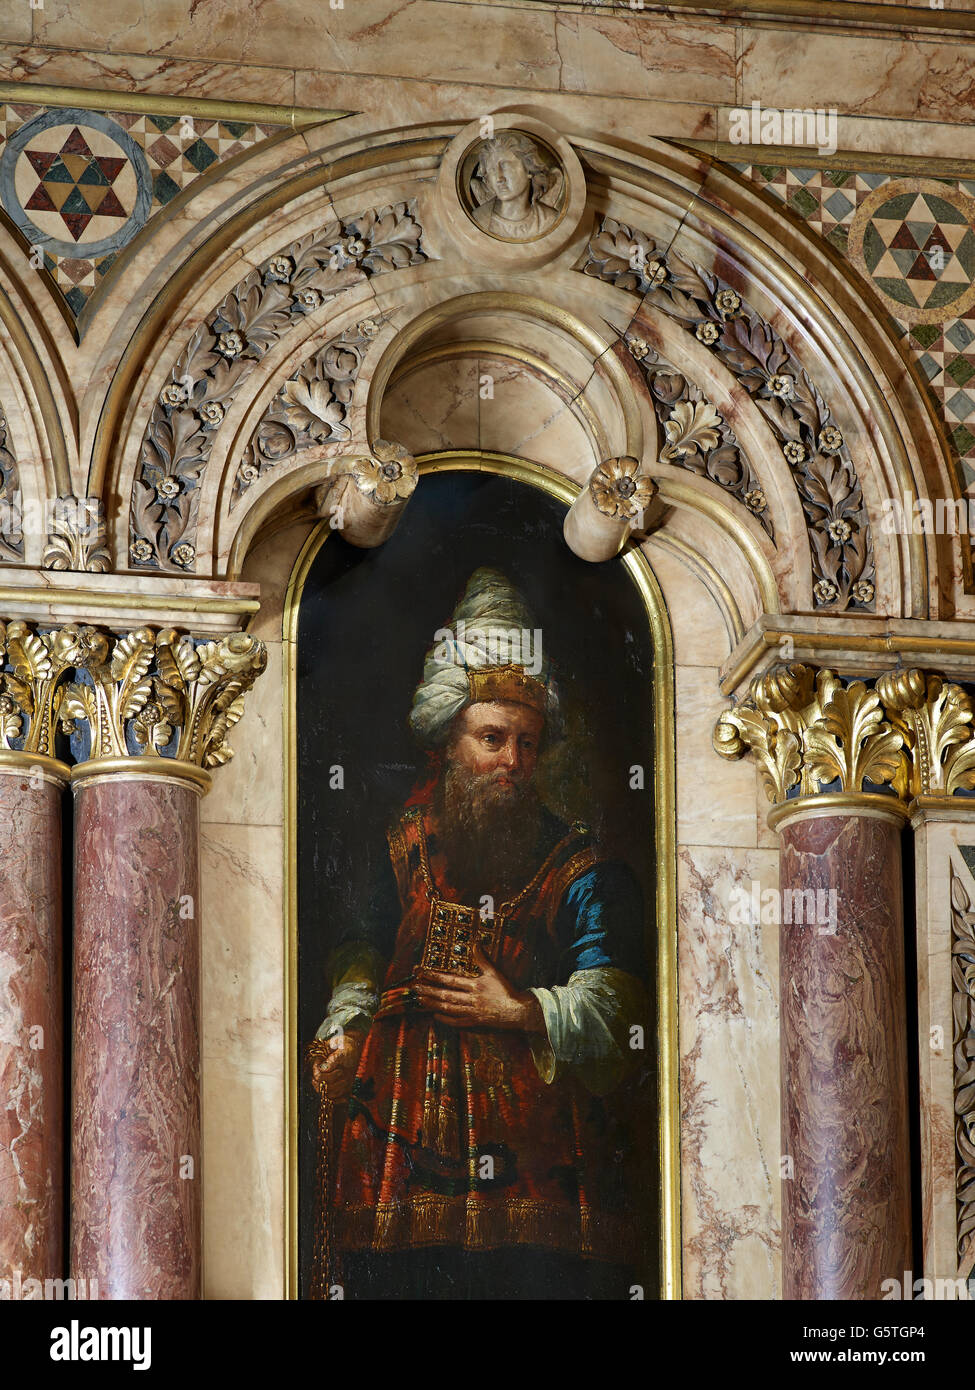 St Michael Cornhill, church in the City of London, painting of Aaron by Robert Streeter - Stock Image